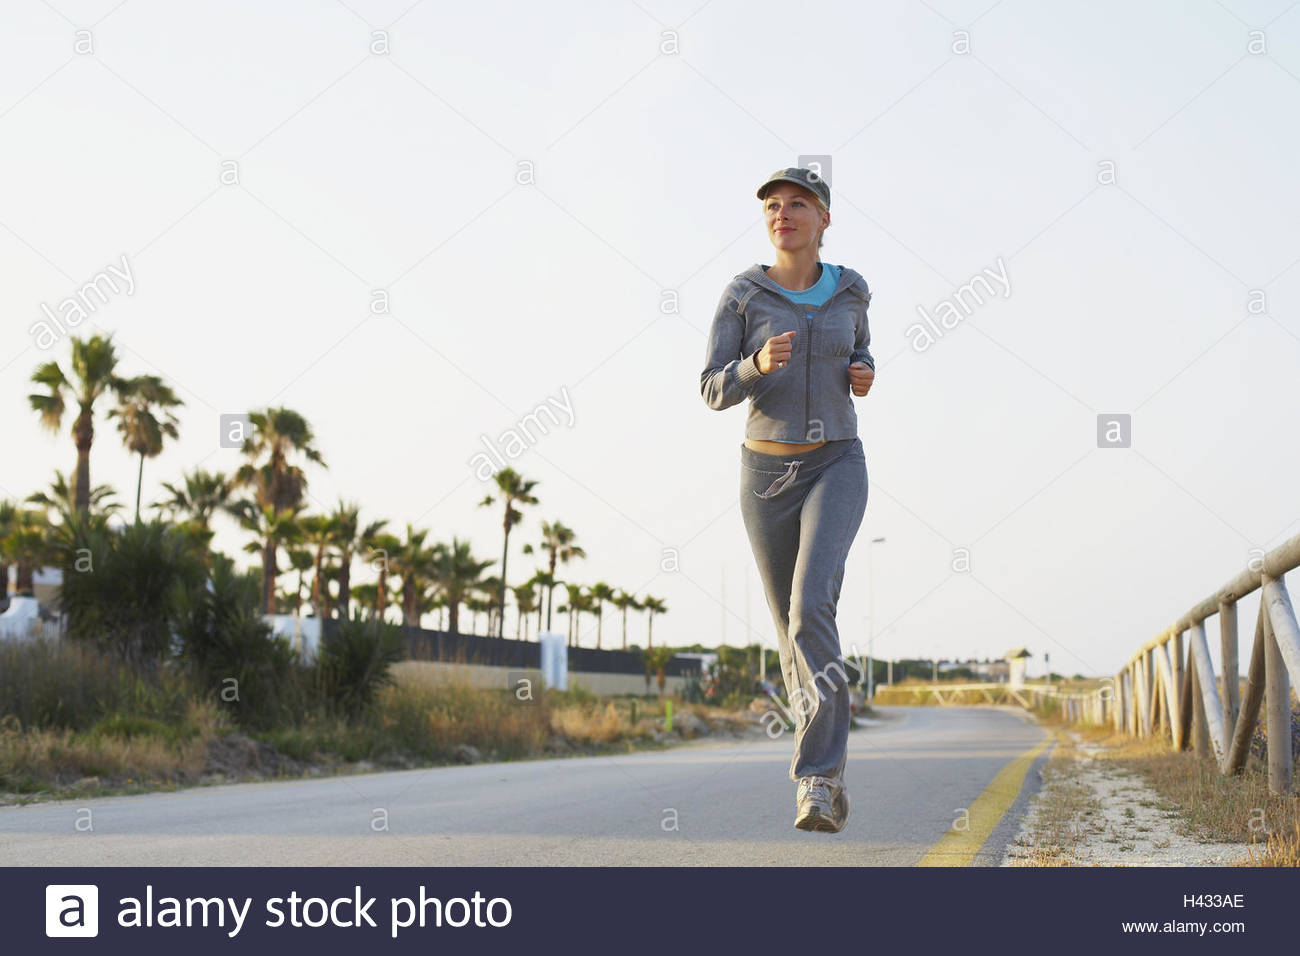 Woman, young, boardwalk, jogging, - Stock Image